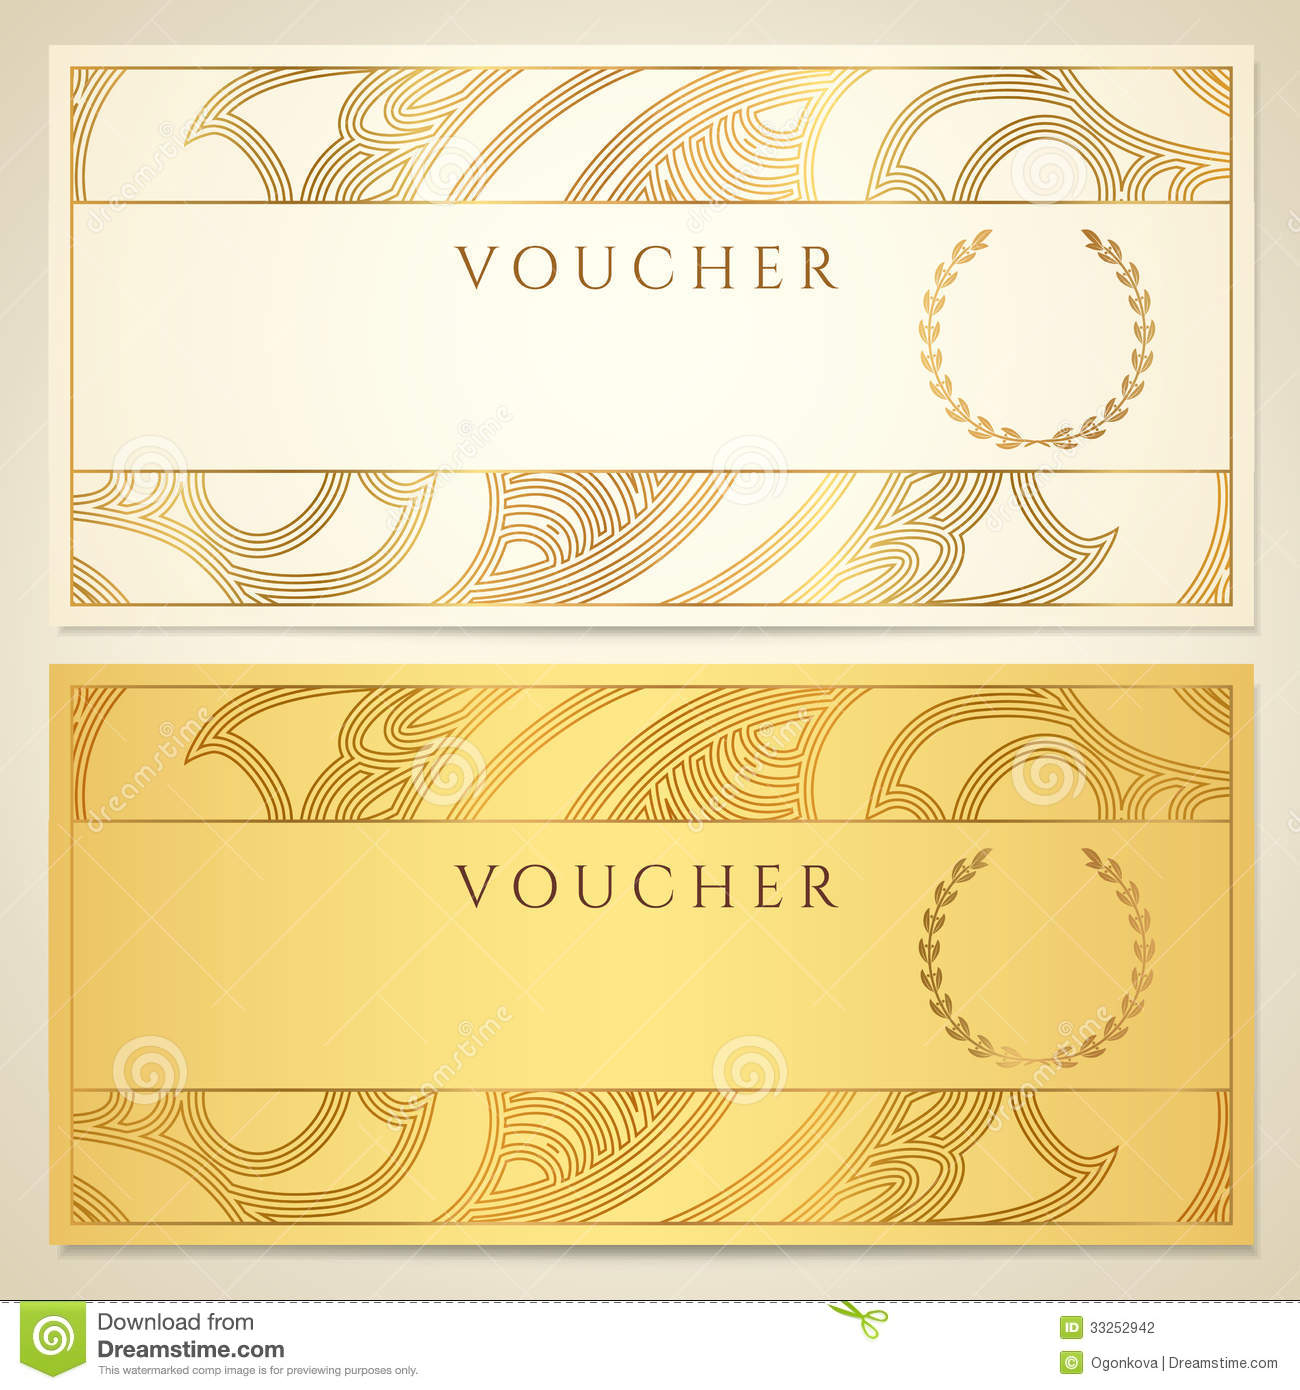 Voucher Gift Certificate Coupon Template Stock Vector